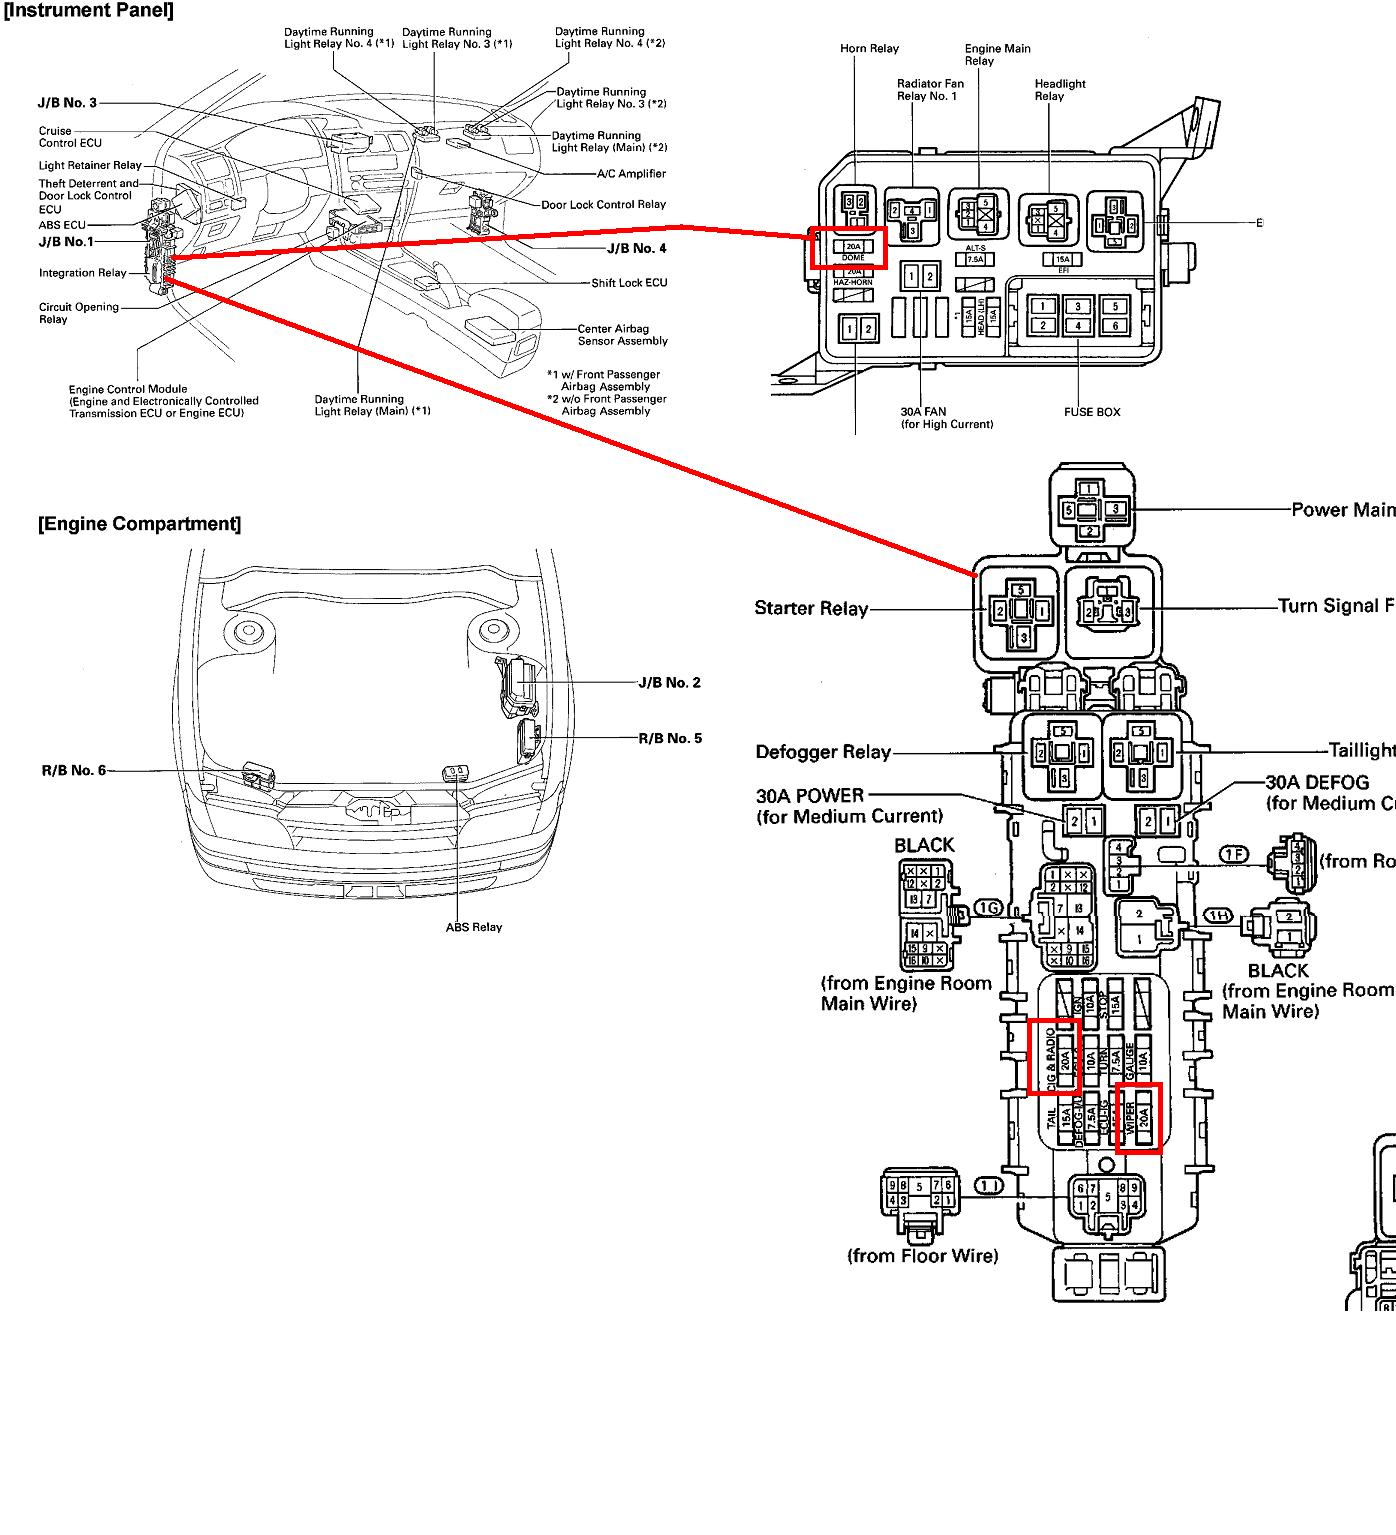 hight resolution of 2003 corolla fuse box location wiring diagrams 2003 corolla belt diagram 2003 corolla fuse box